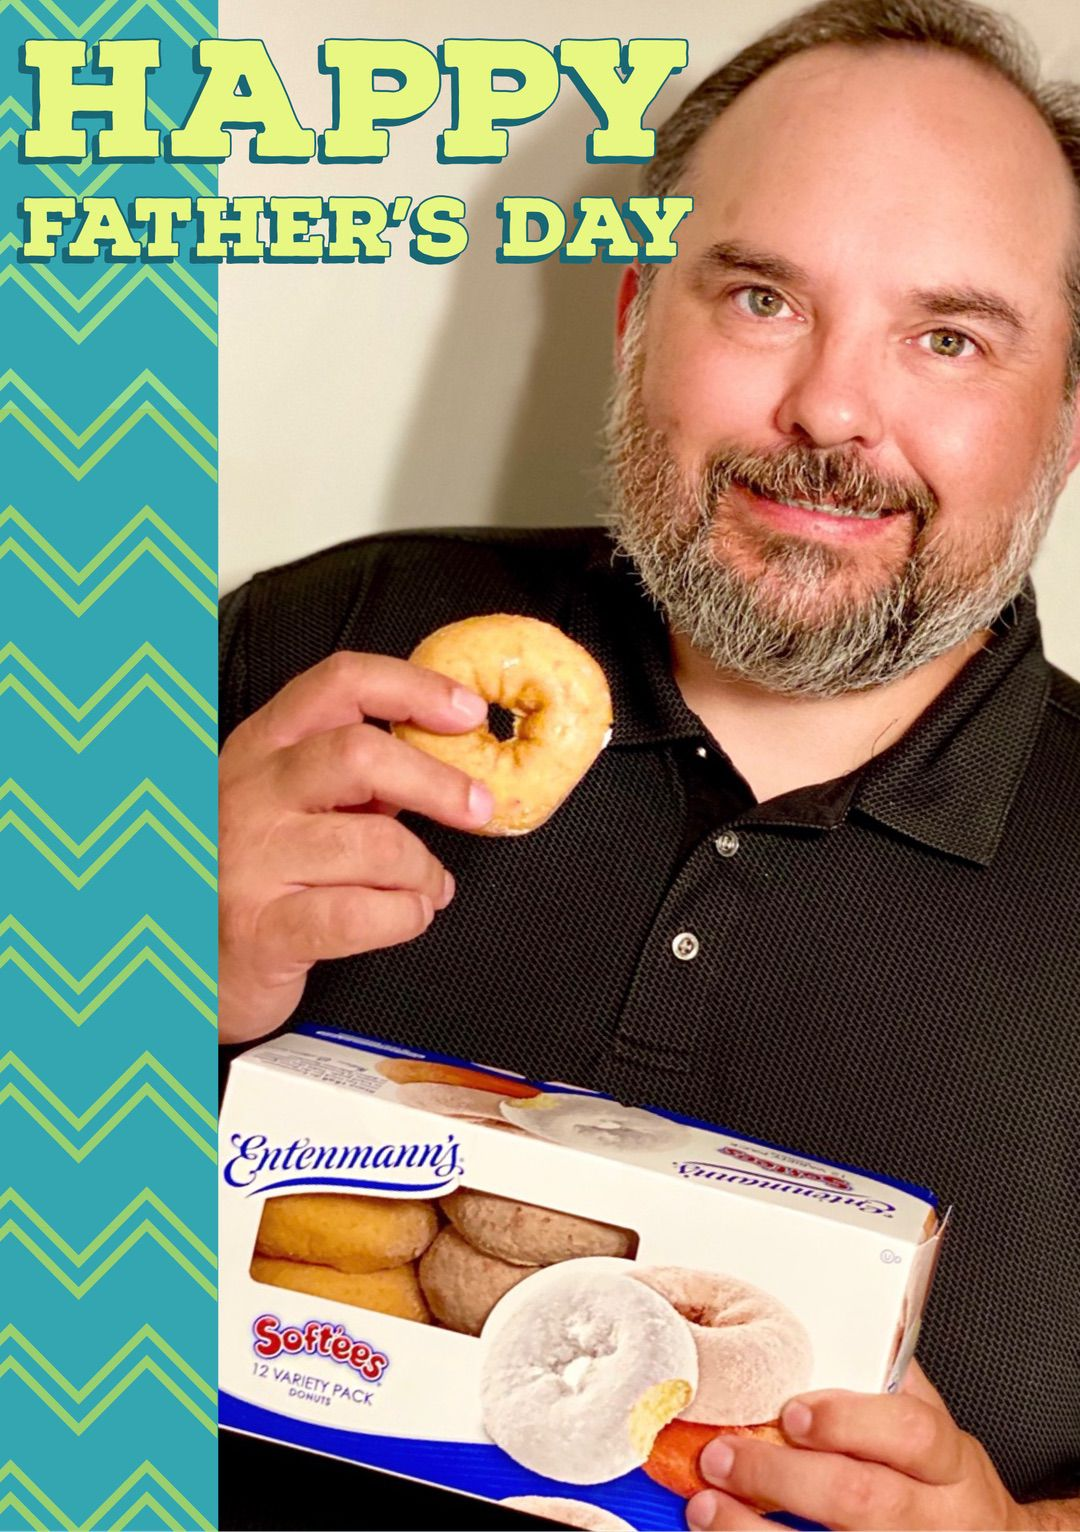 EntenMAN of the Year Father's Day Contest